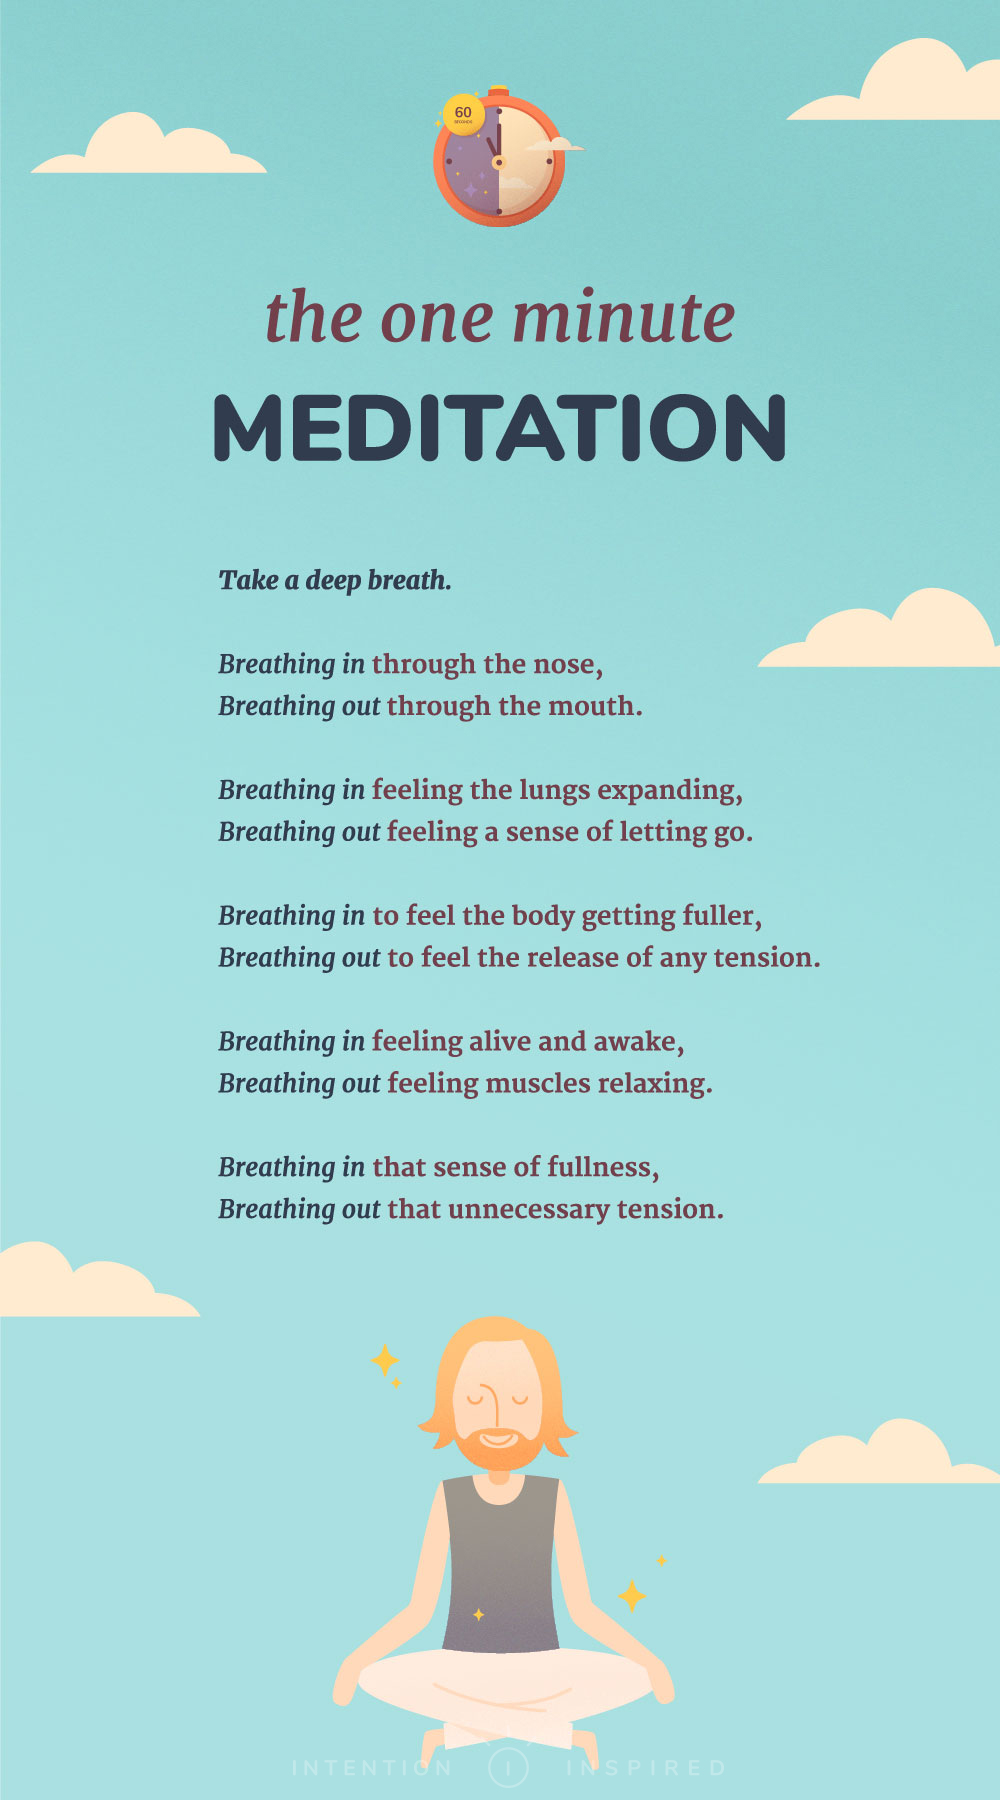 Don't have 20 minutes? That's okay, this meditation only takes 60 seconds!